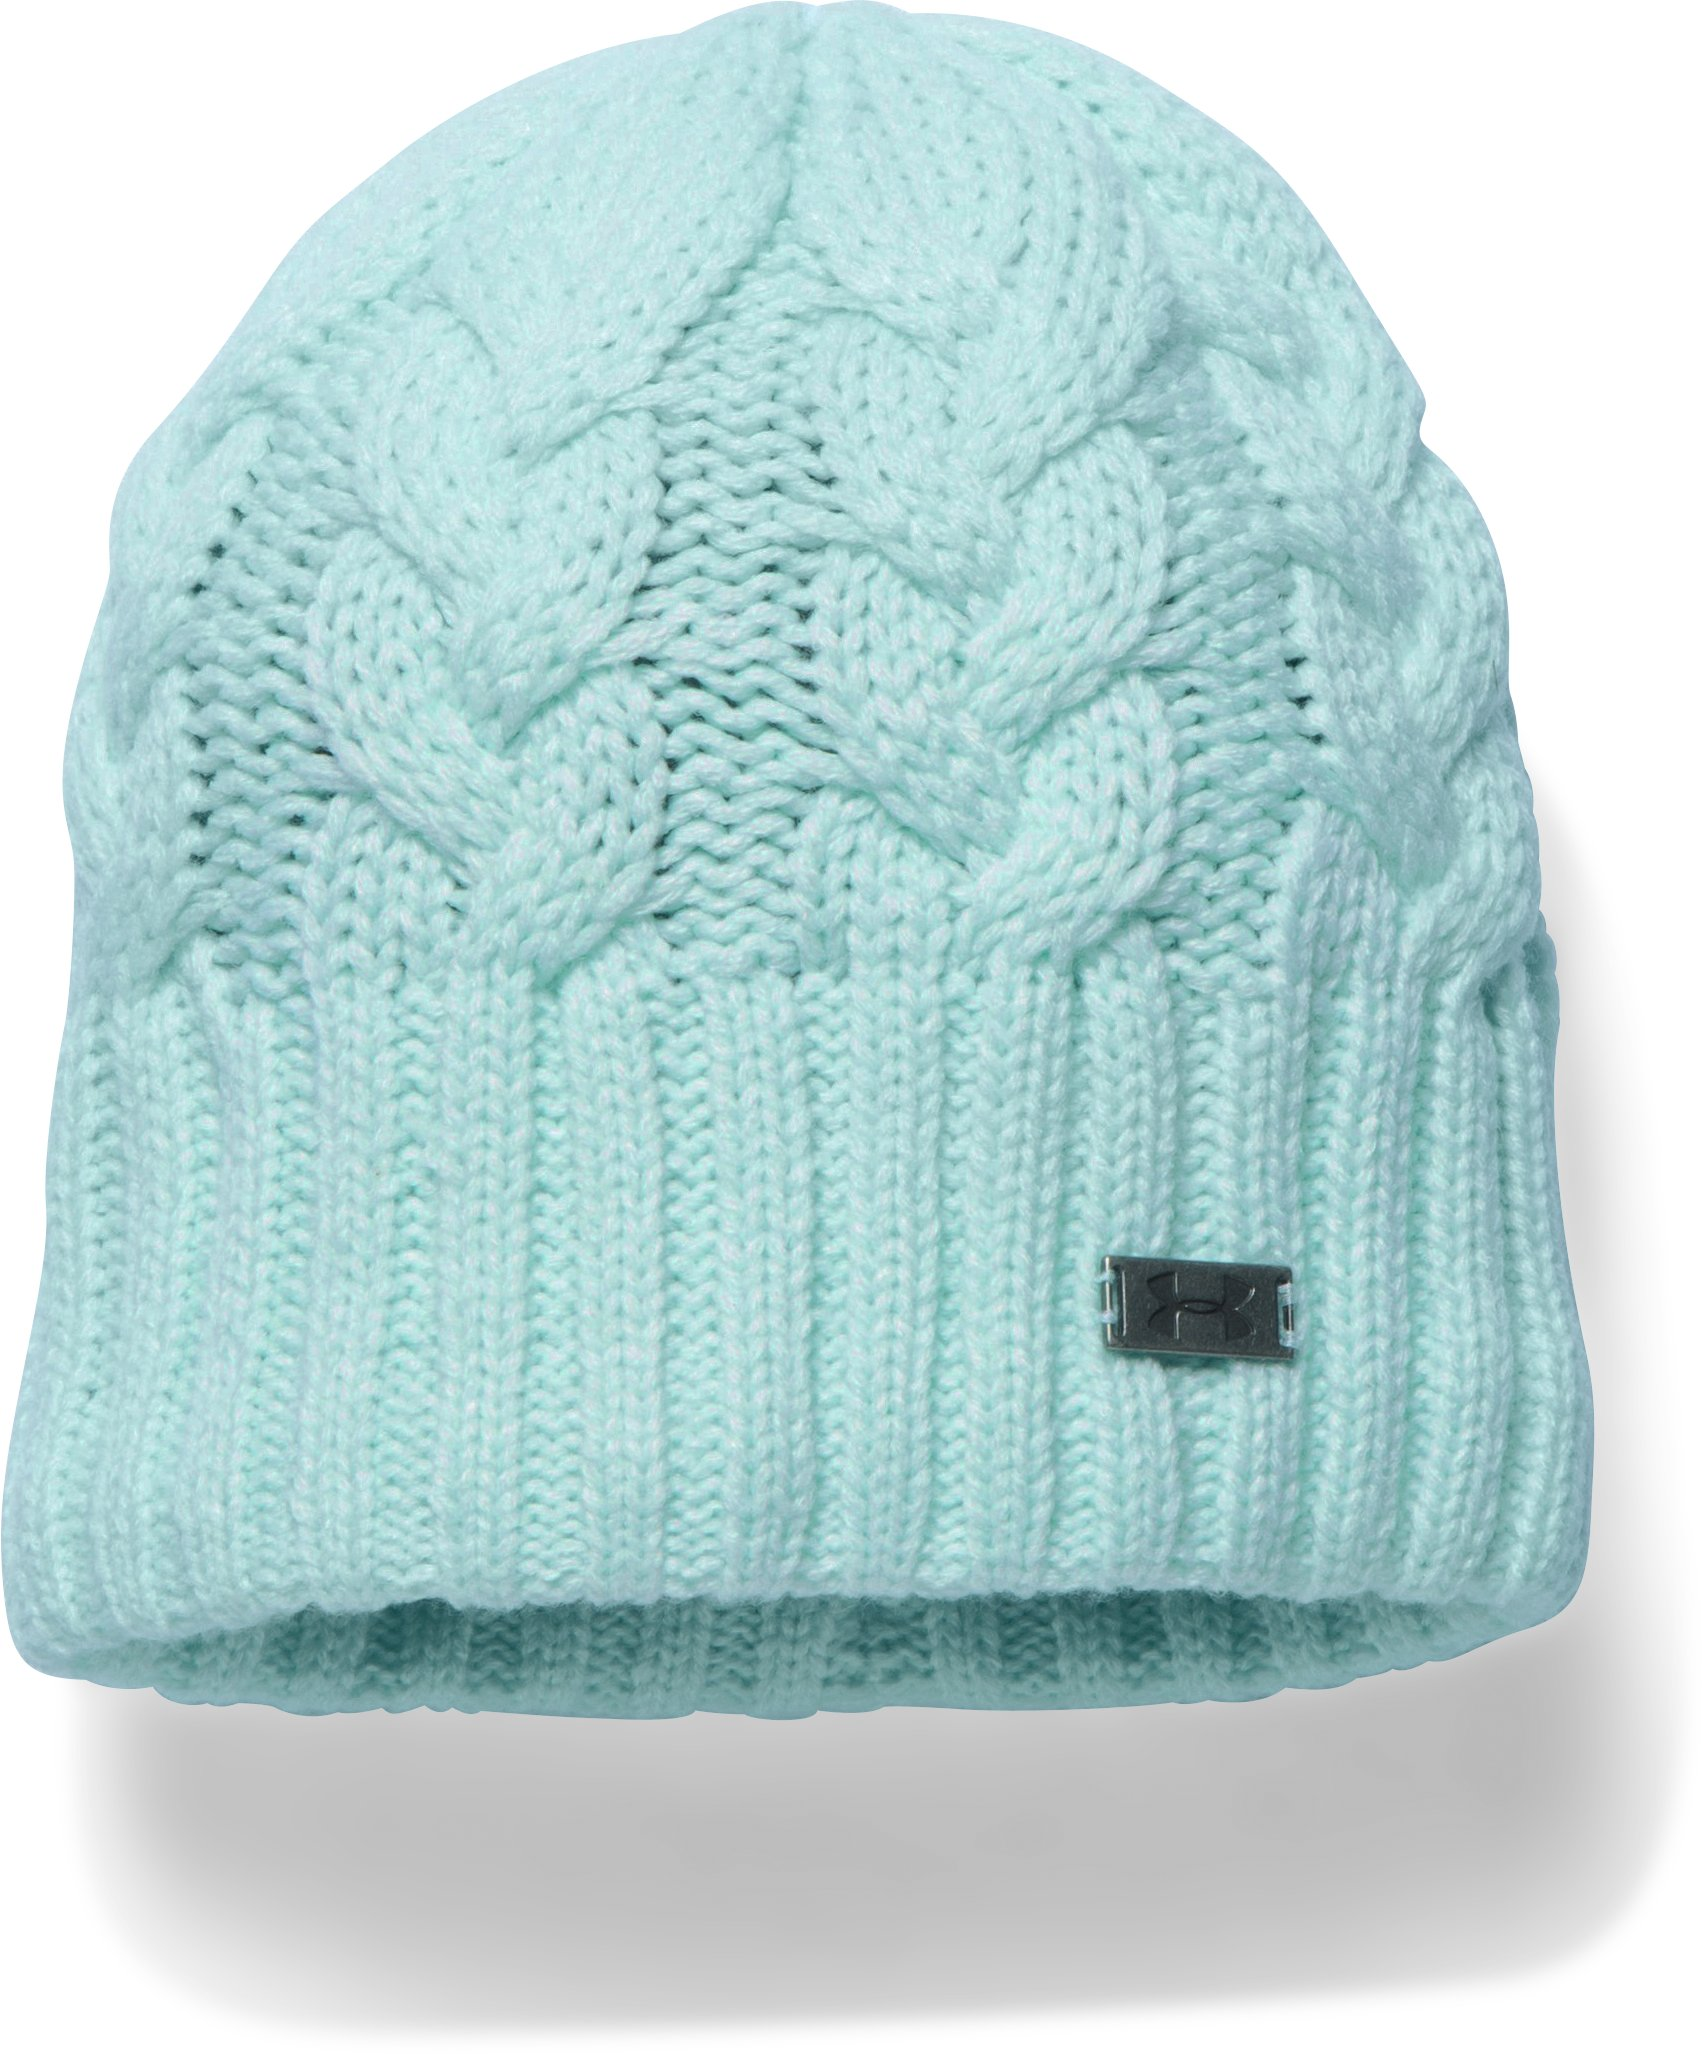 Women's UA Around Town Beanie, AQUA FALLS, undefined